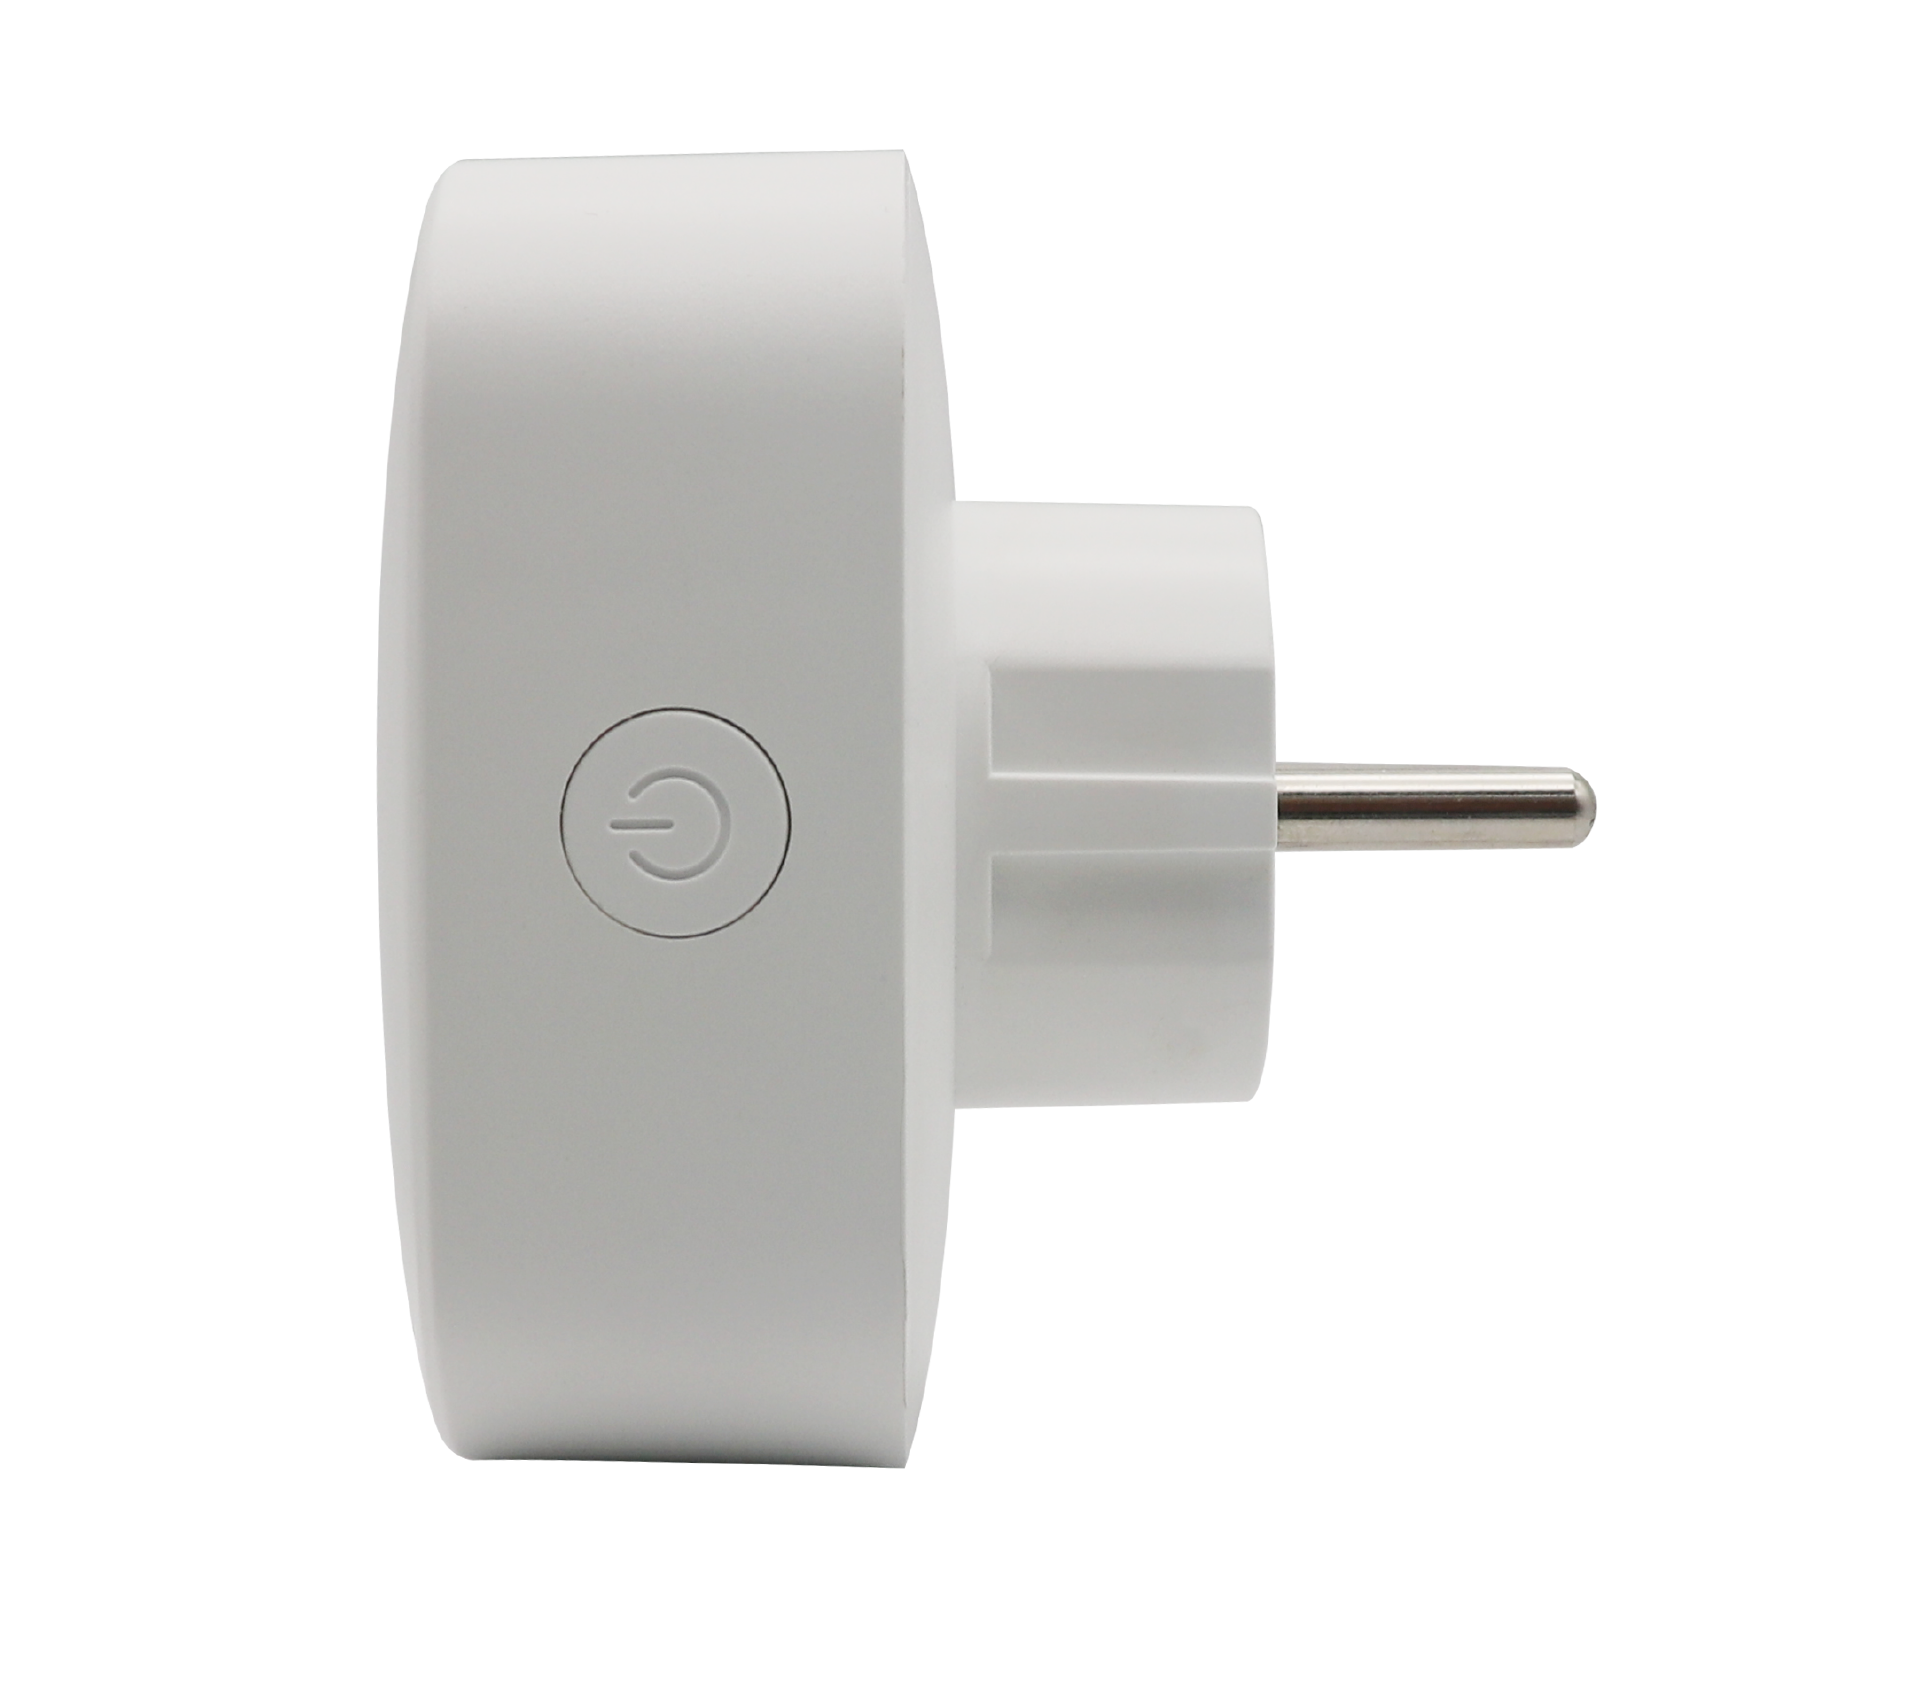 European Standard WiFi Smart Socket Smart Plug SA-P202A